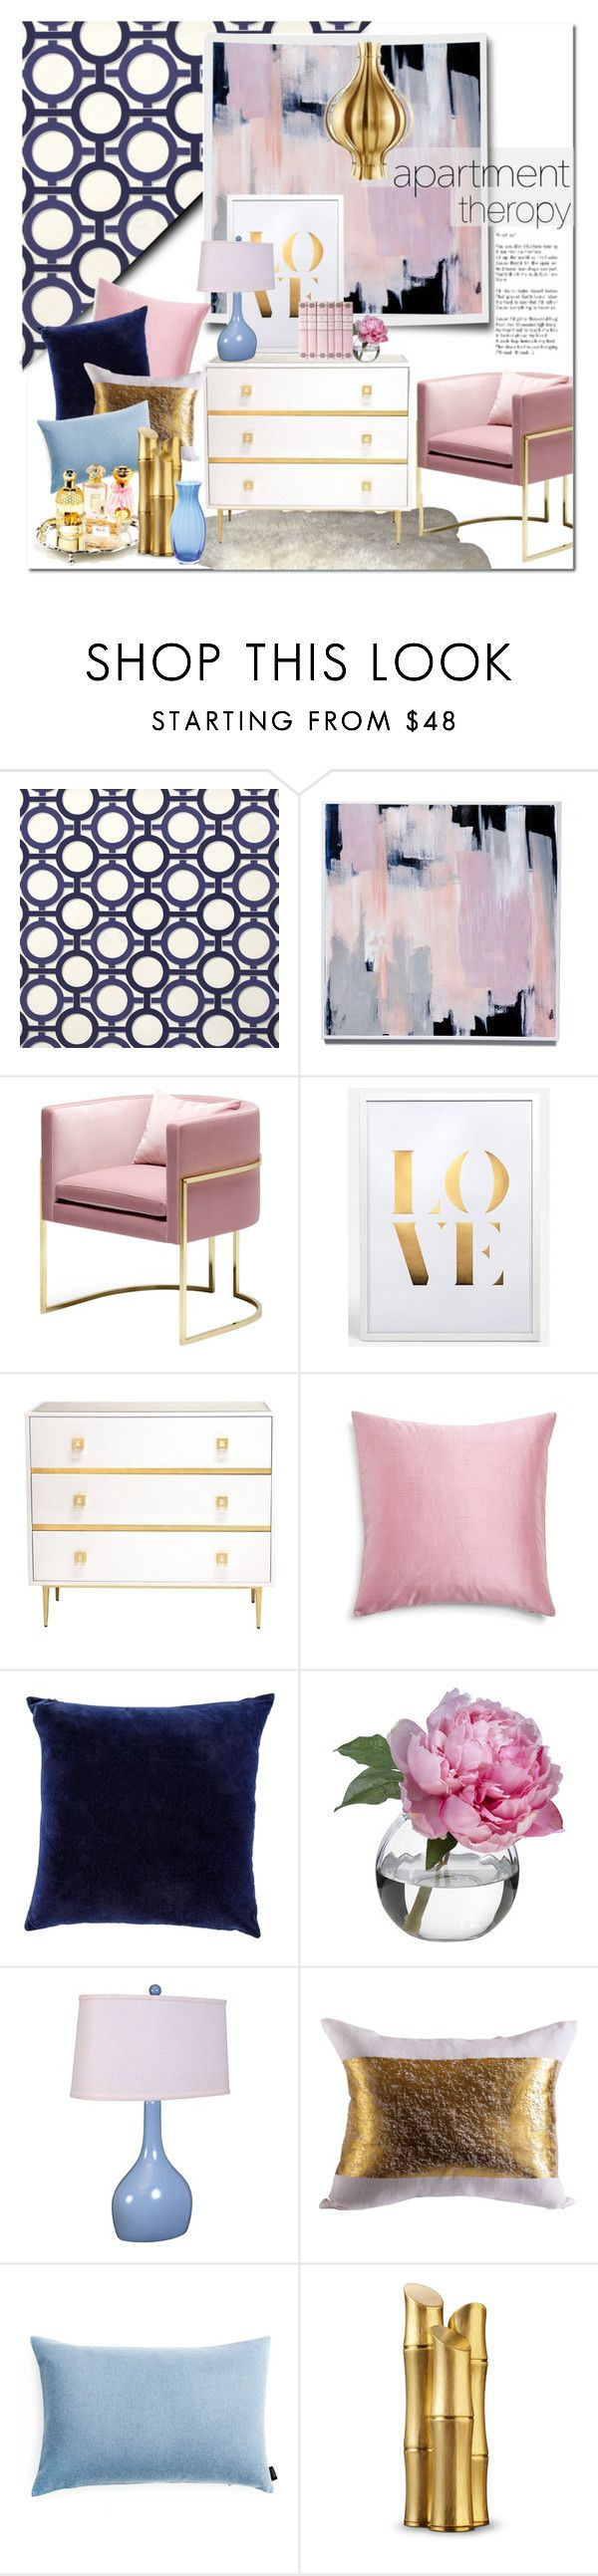 """""""Top Notch"""" by qrystal5to9 on Polyvore featuring interior, interiors, interior design, home, home decor, interior decorating, Graham & Brown, Worlds Away, Diane James and Universal Lighting and Decor"""